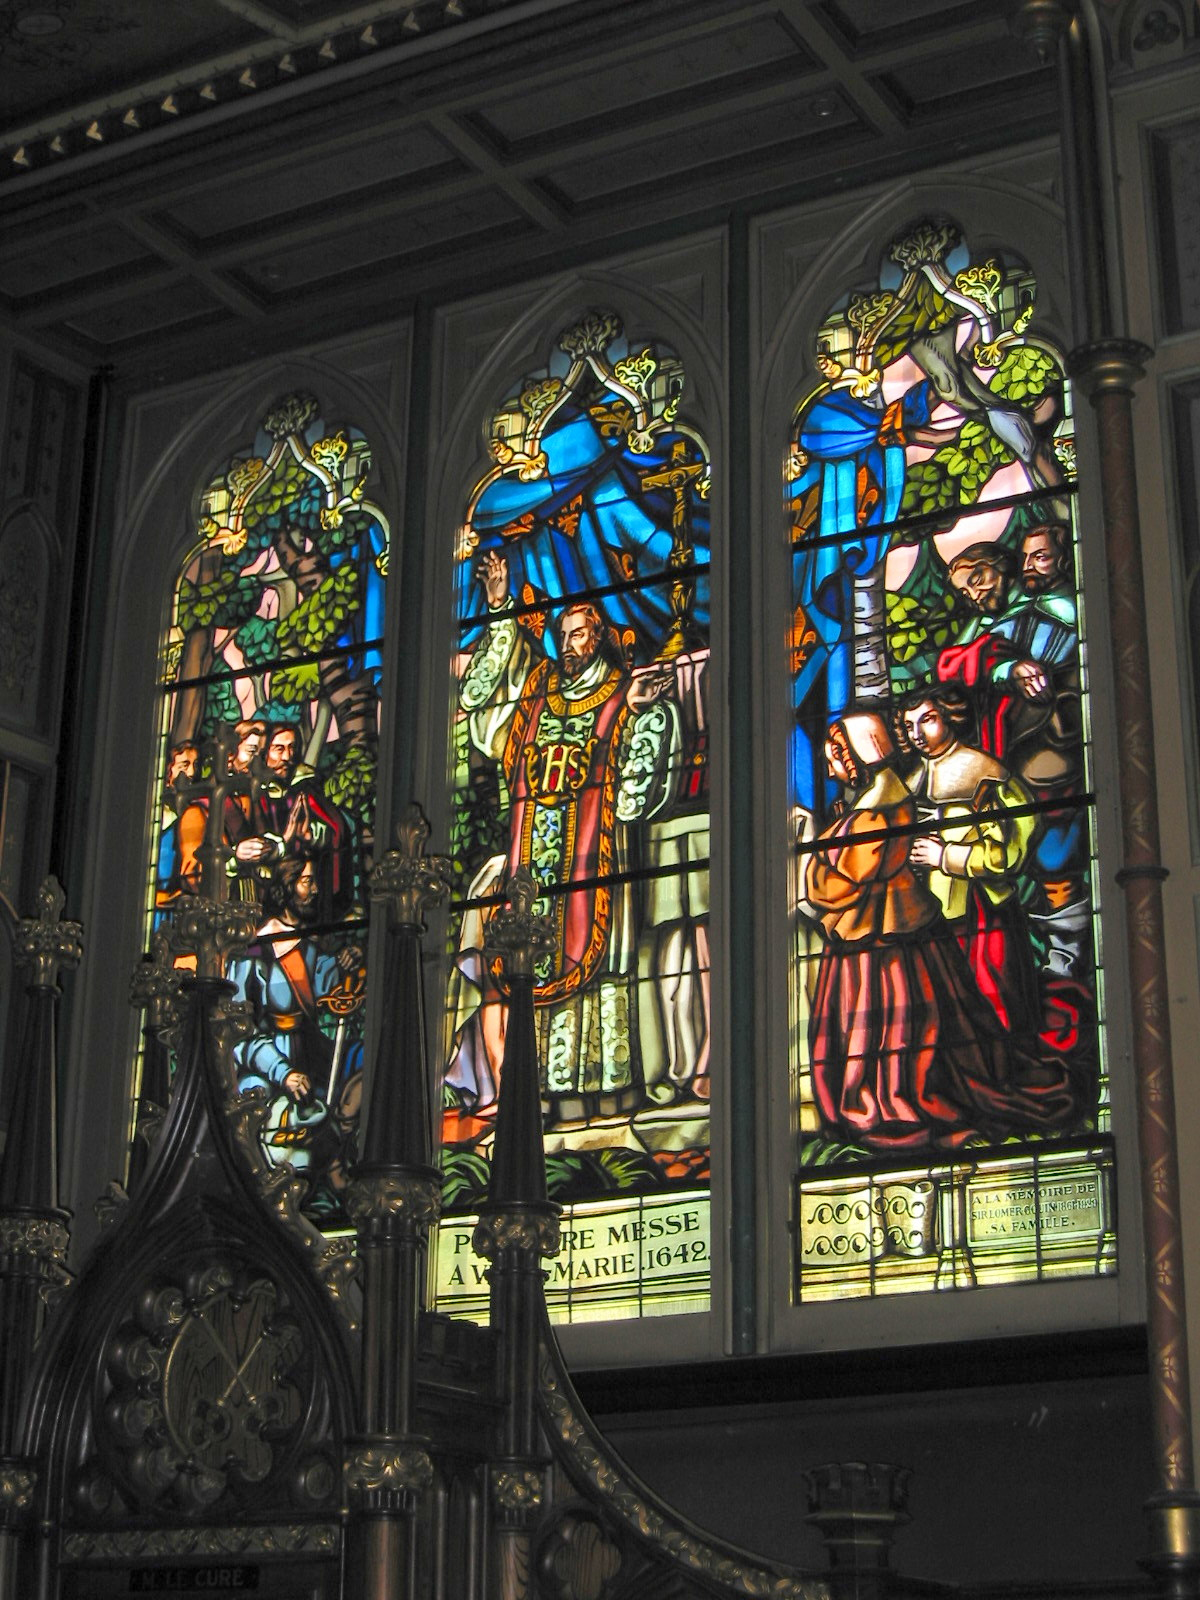 Notre Dame Basilica, Montreal, Canada, Stained glass windows